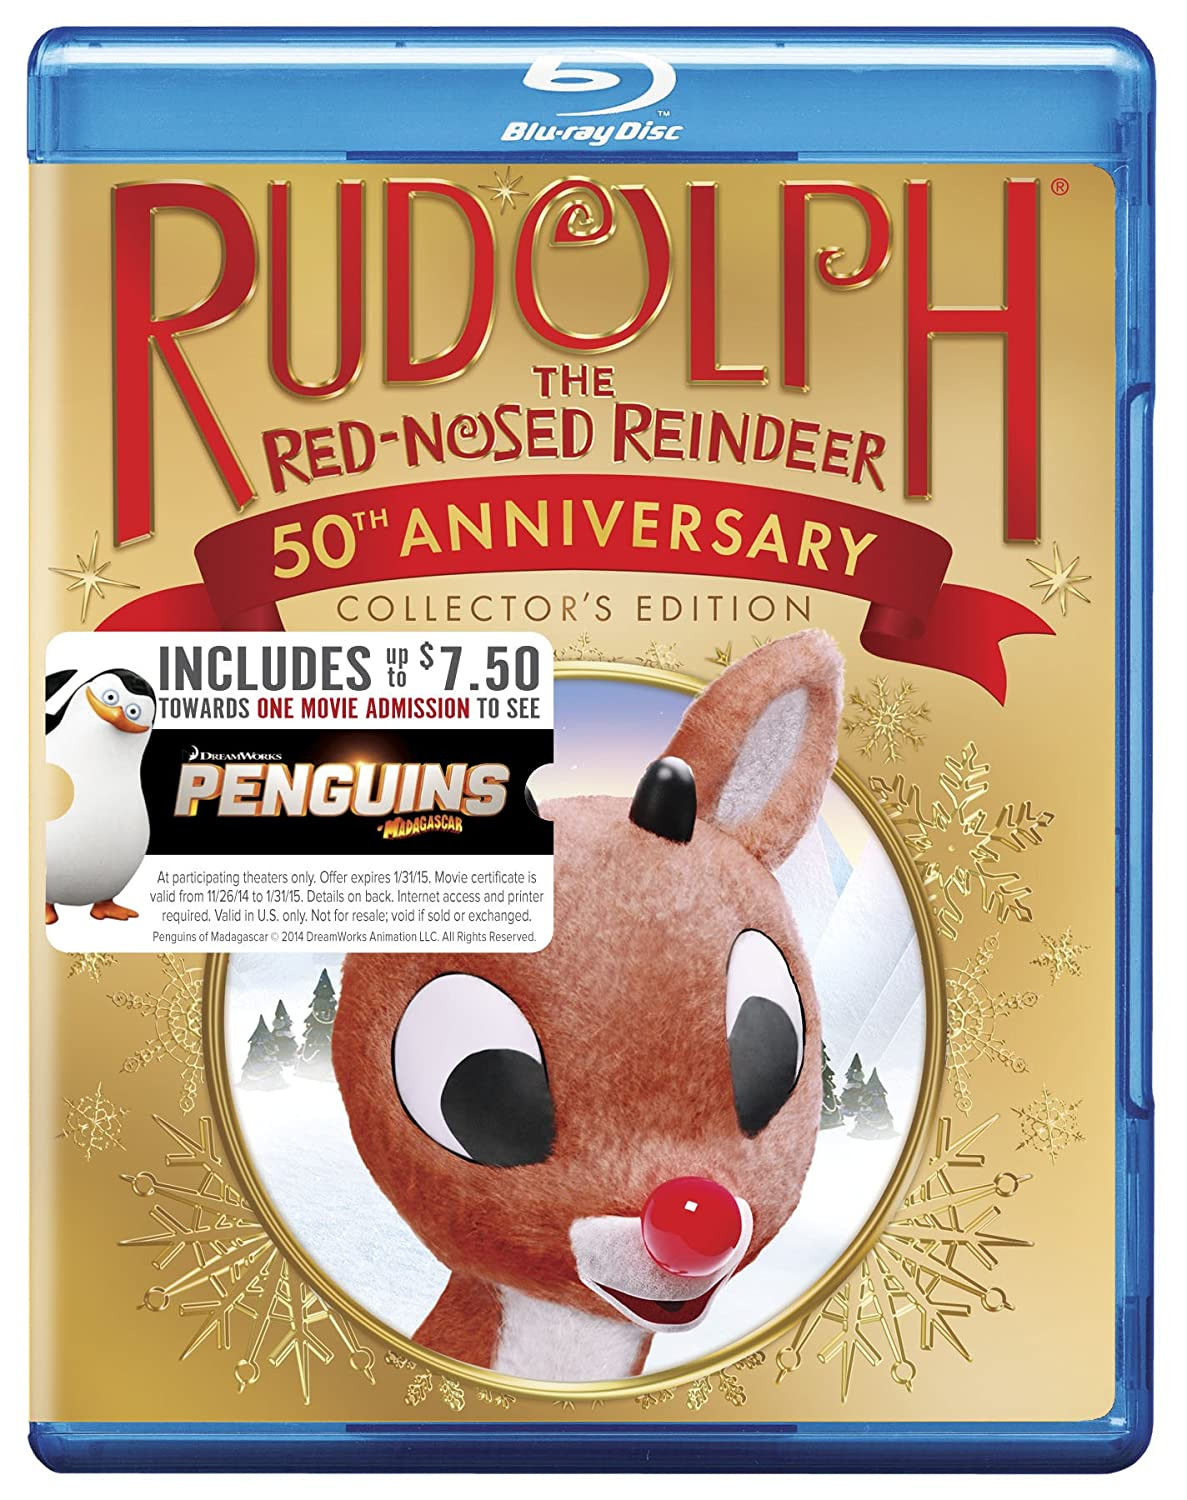 Rudolph the Red Nosed Reindeer: 50th Anniversary